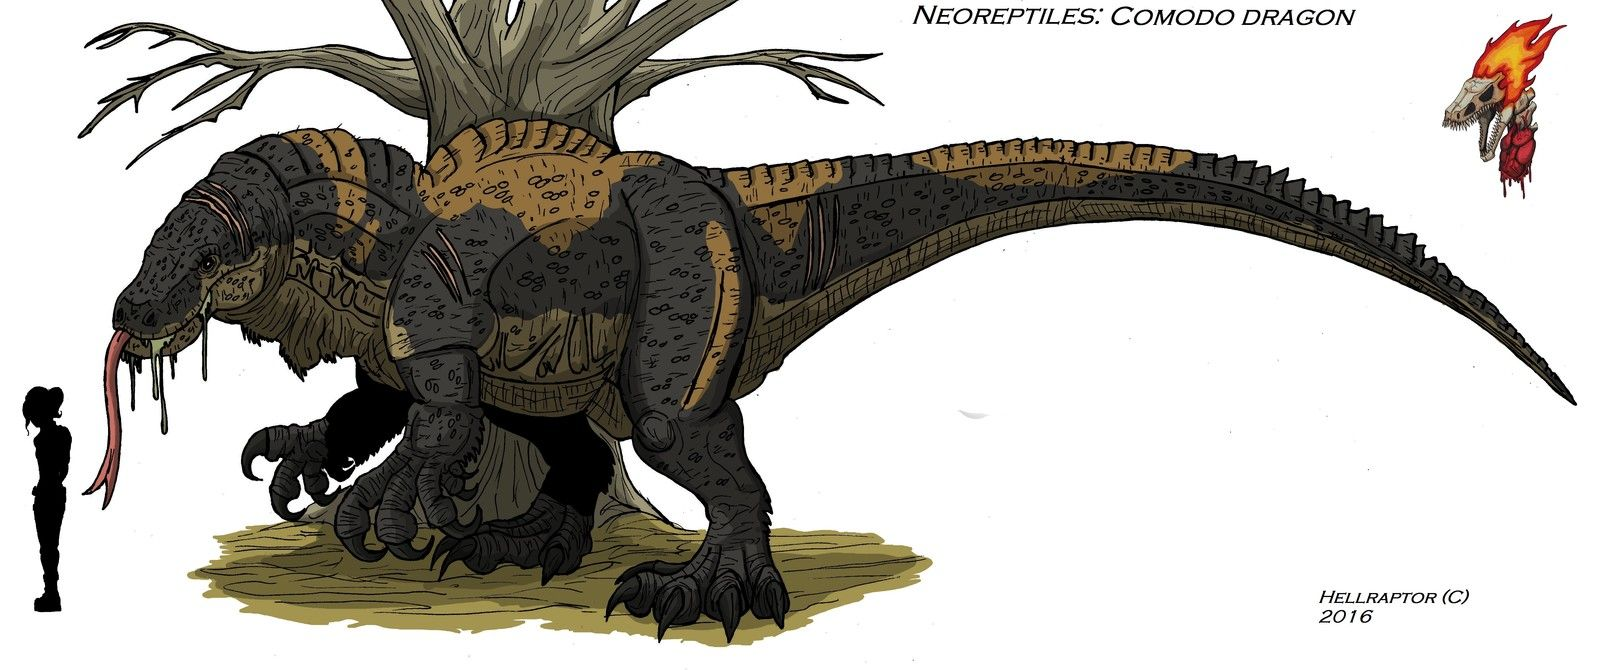 neoreptiles comodo dragon finished artowork and concept richard